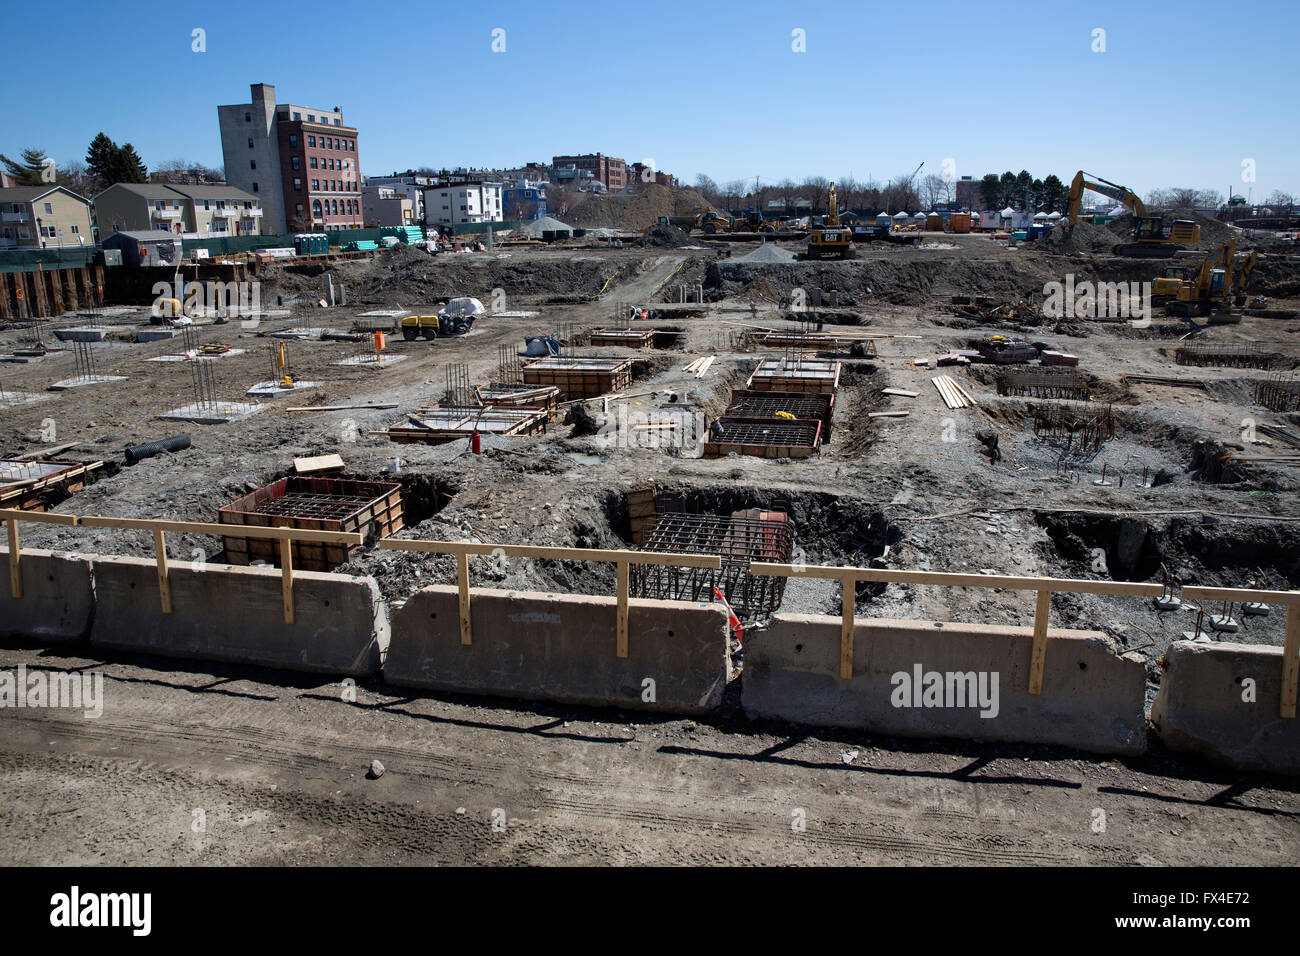 Housing construction site known as Portside at East Pier, East Boston, Massachusetts, USA - Stock Image